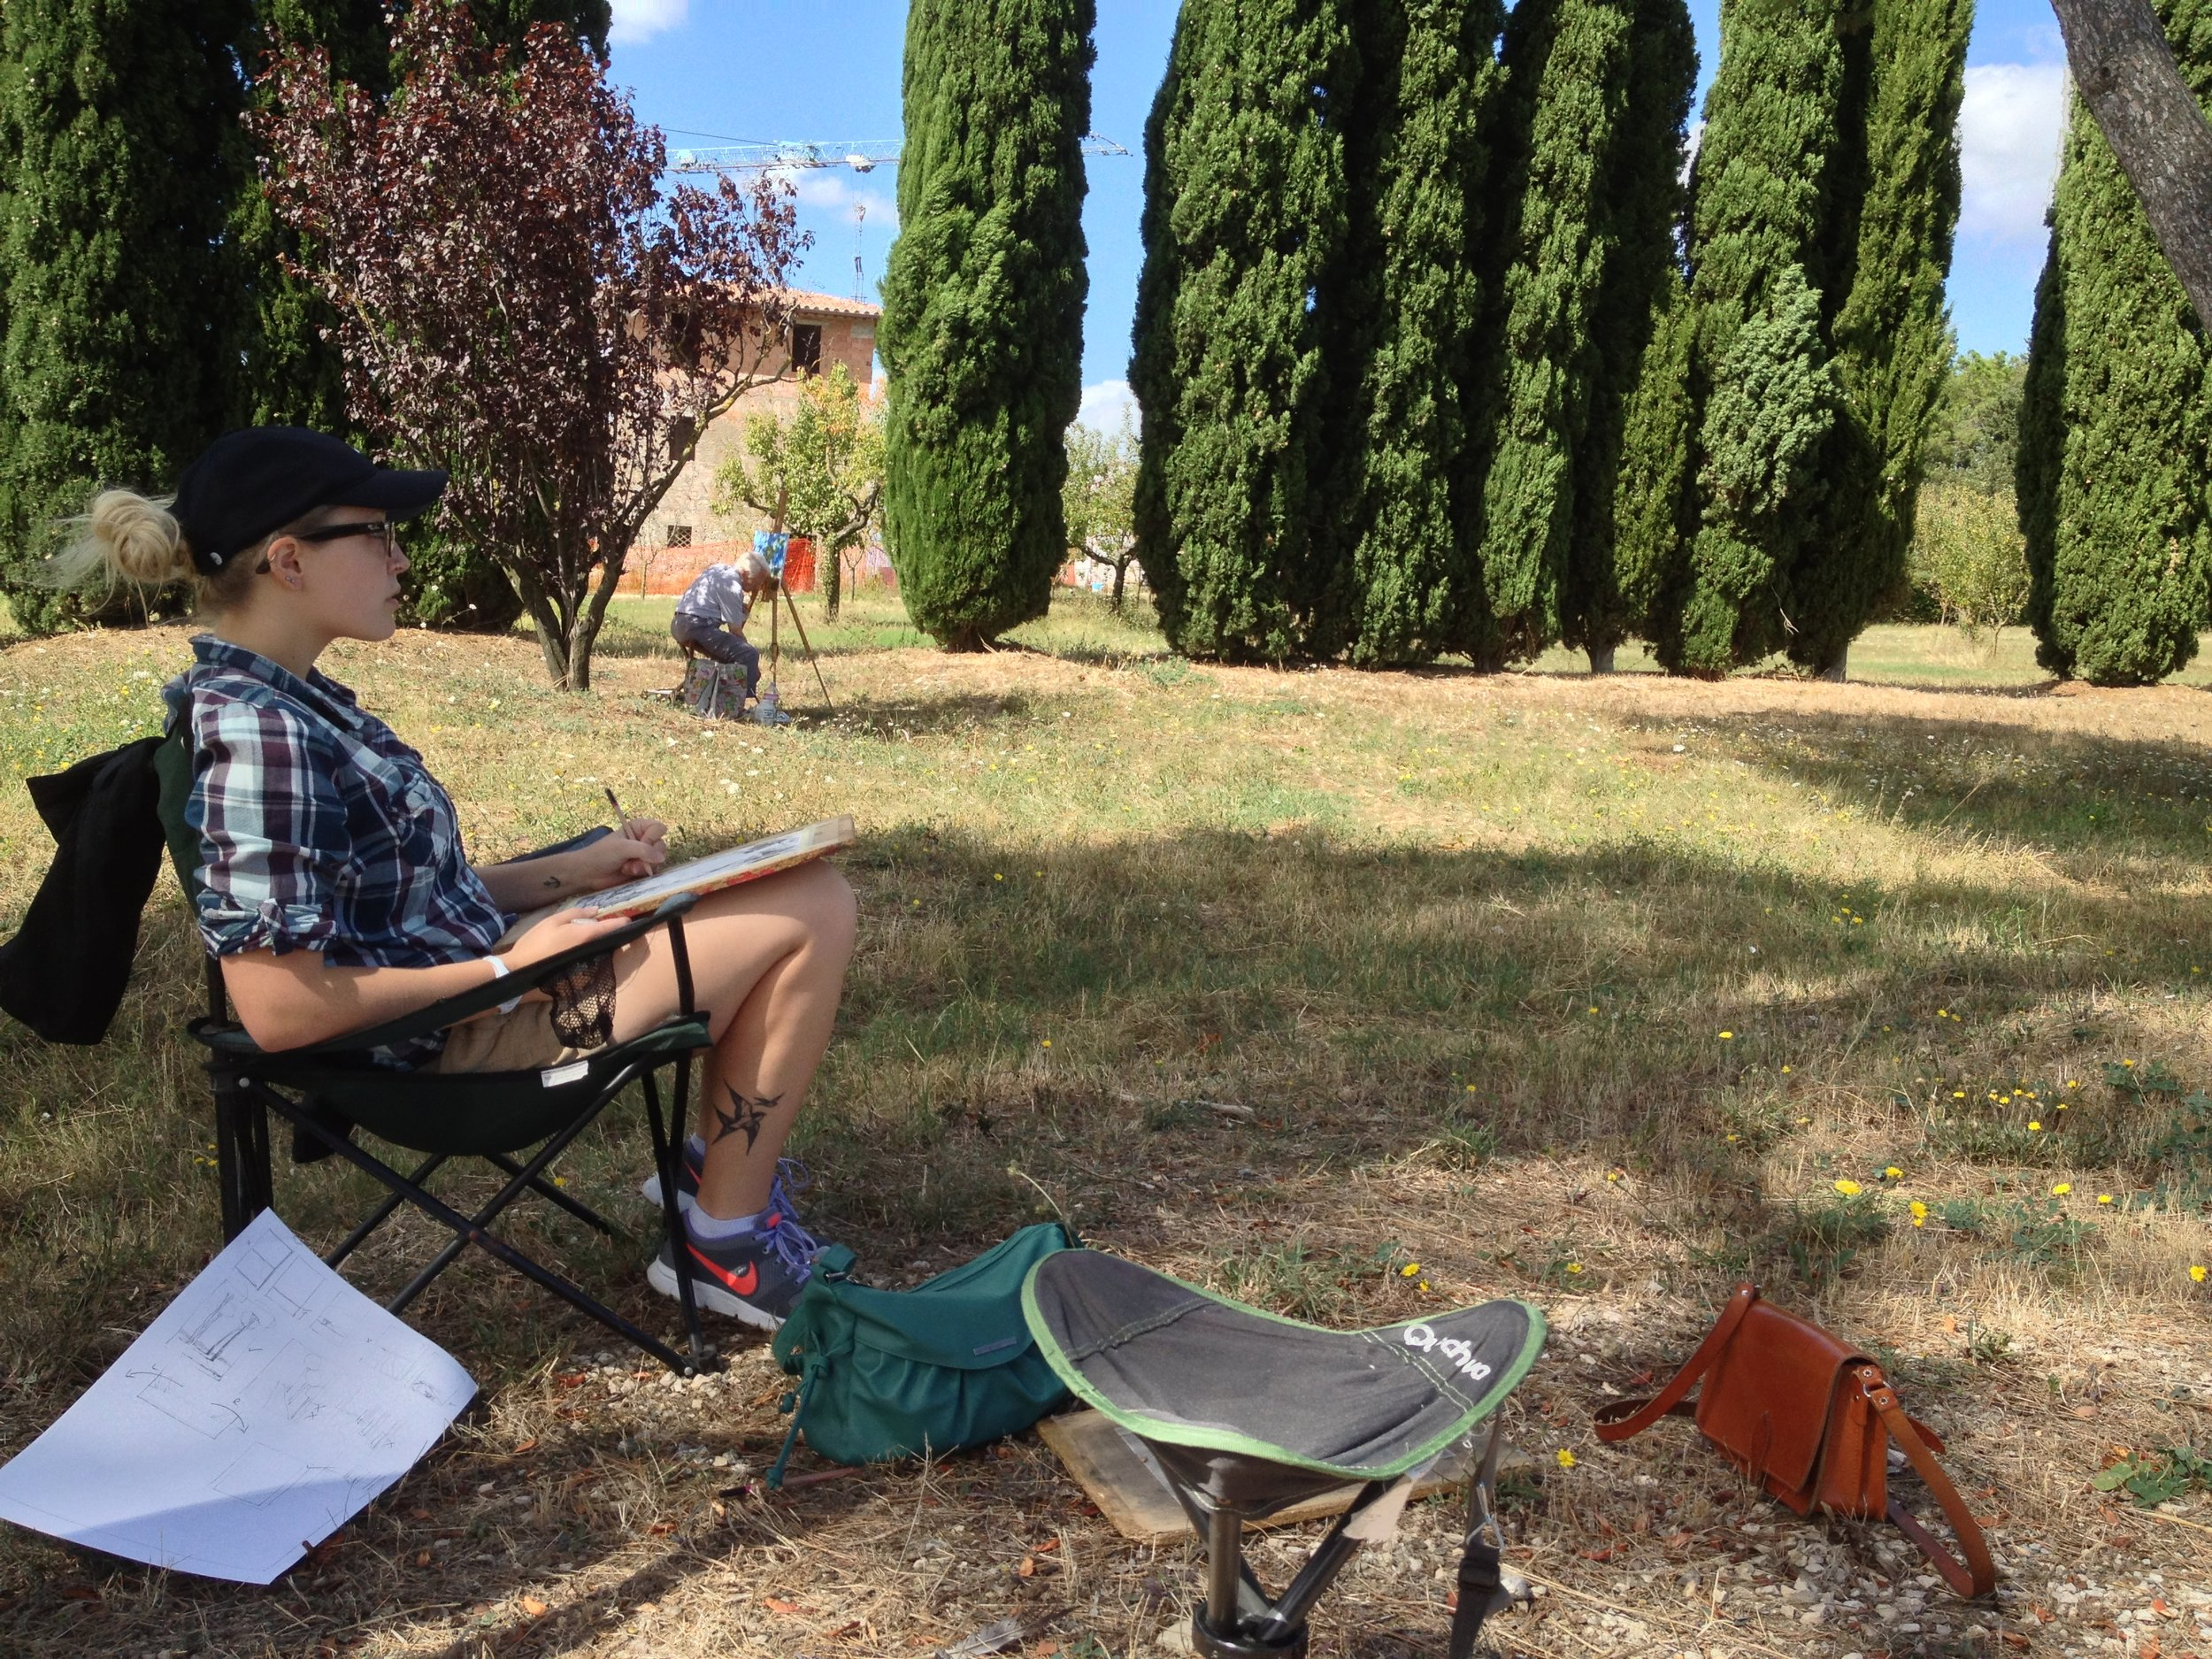 On-site sketching. Tuscany, Italy @thetravellingartisan